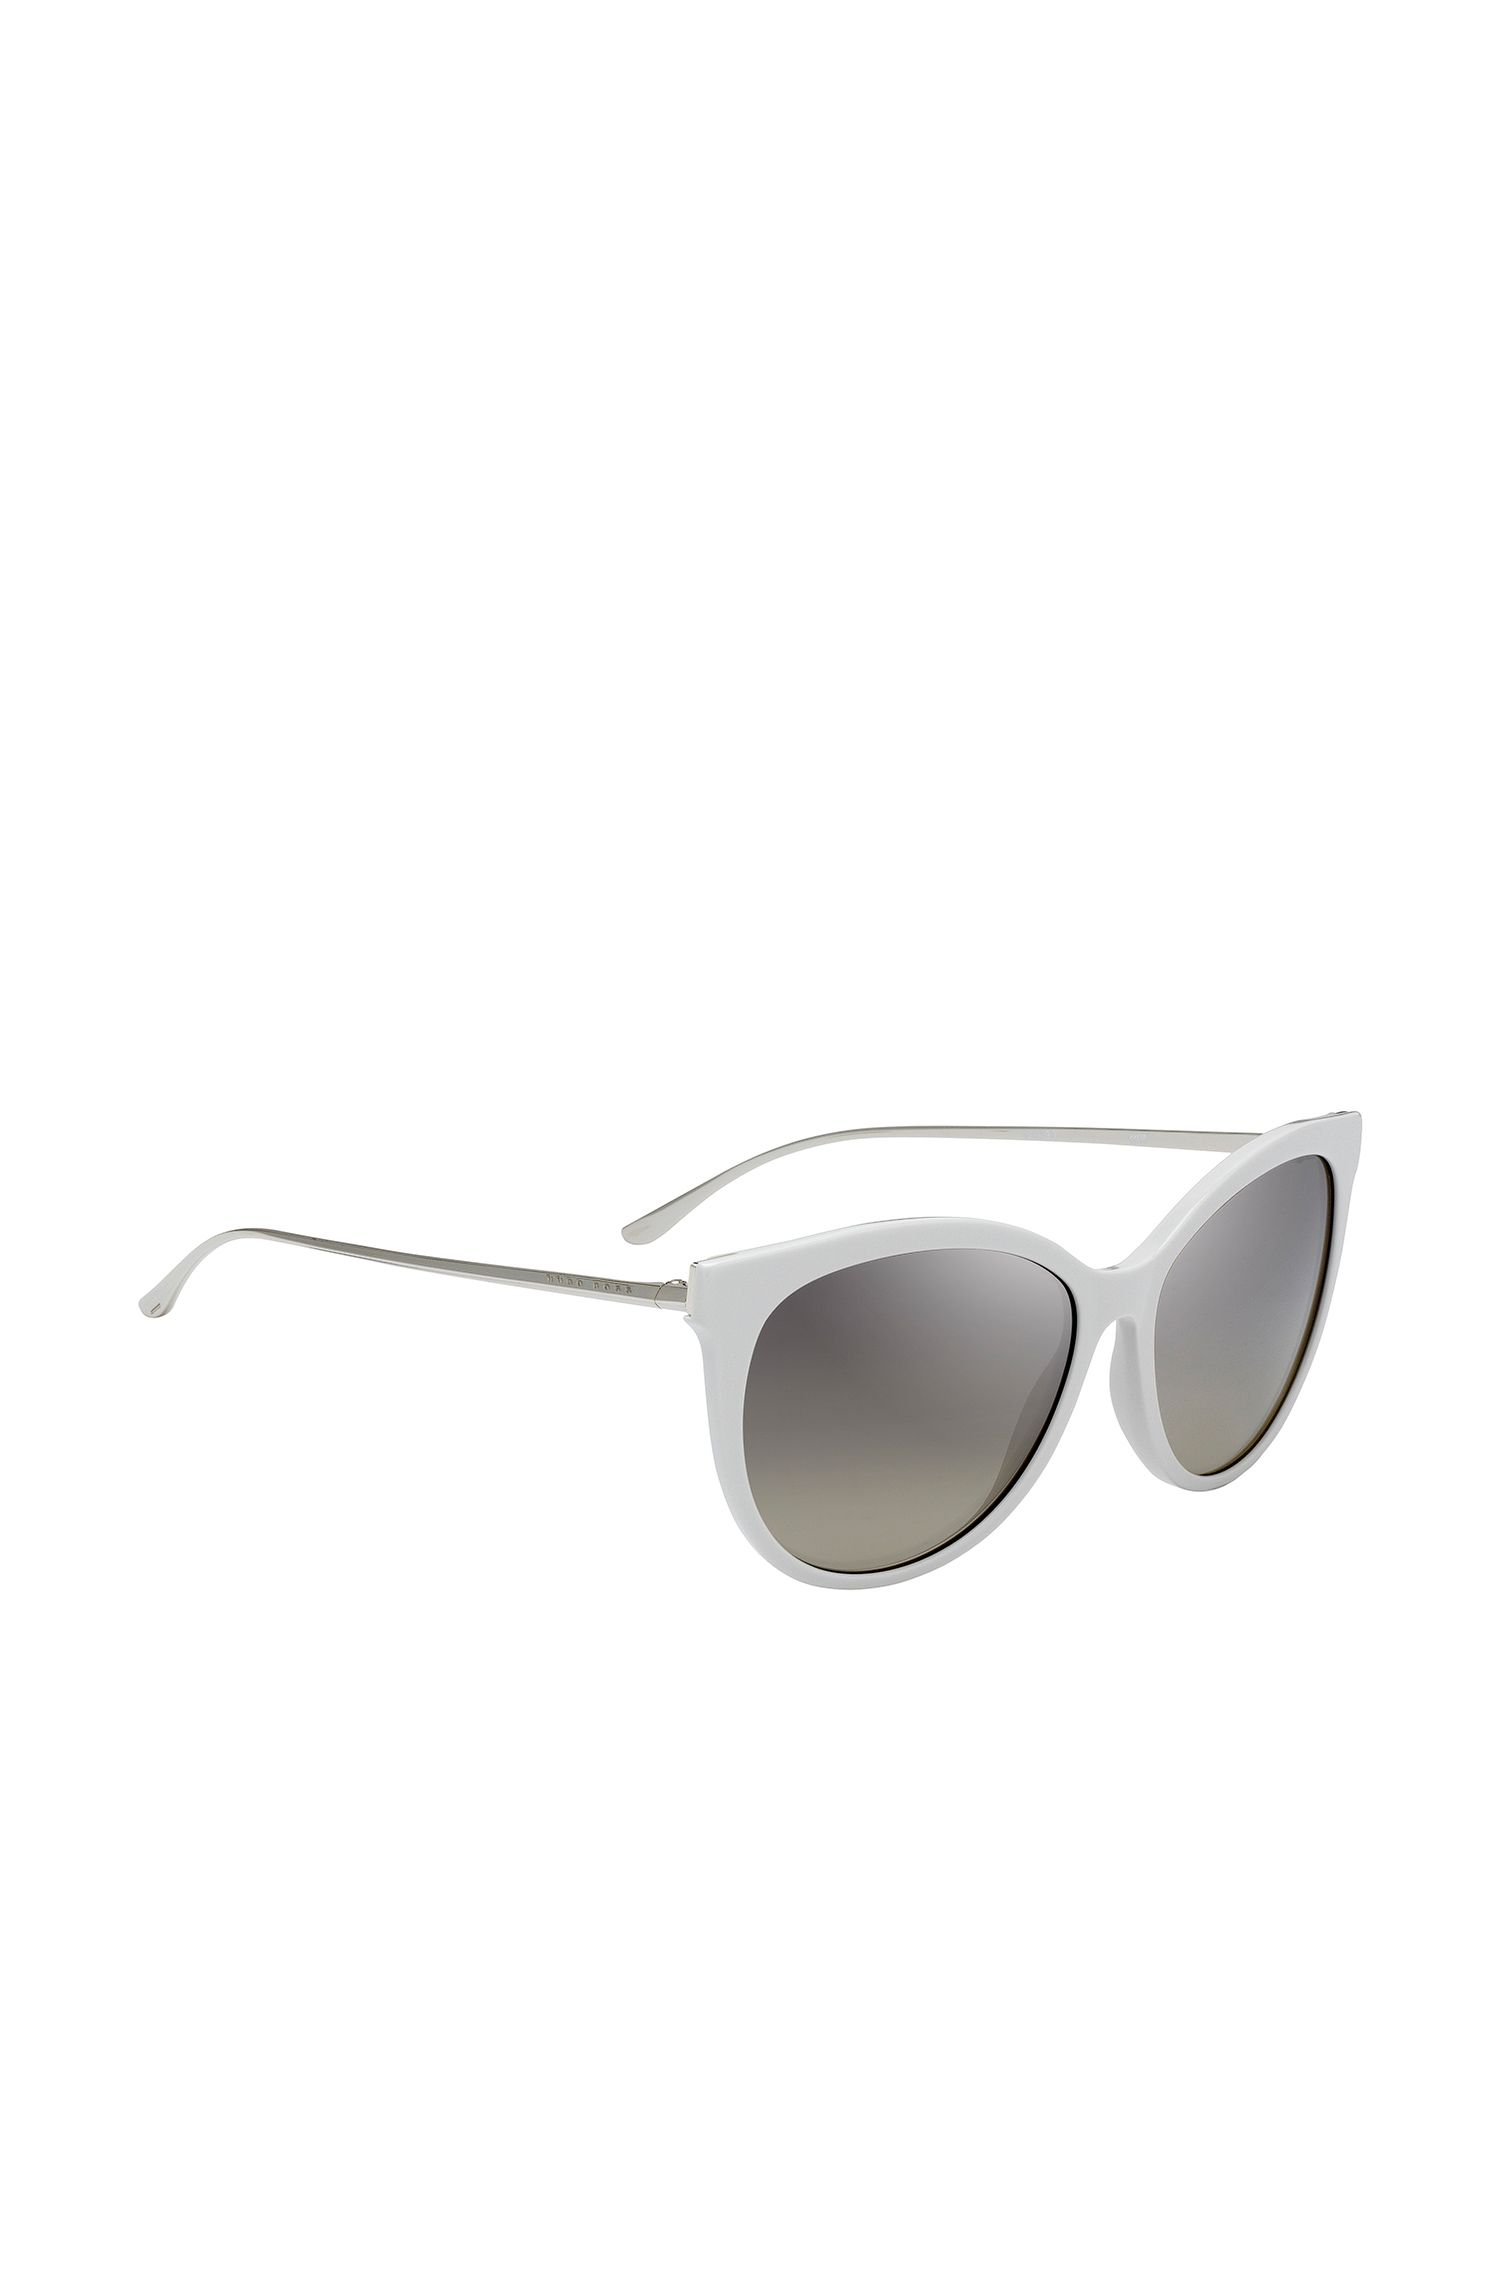 Cat-eye sunglasses with slim shaped temples